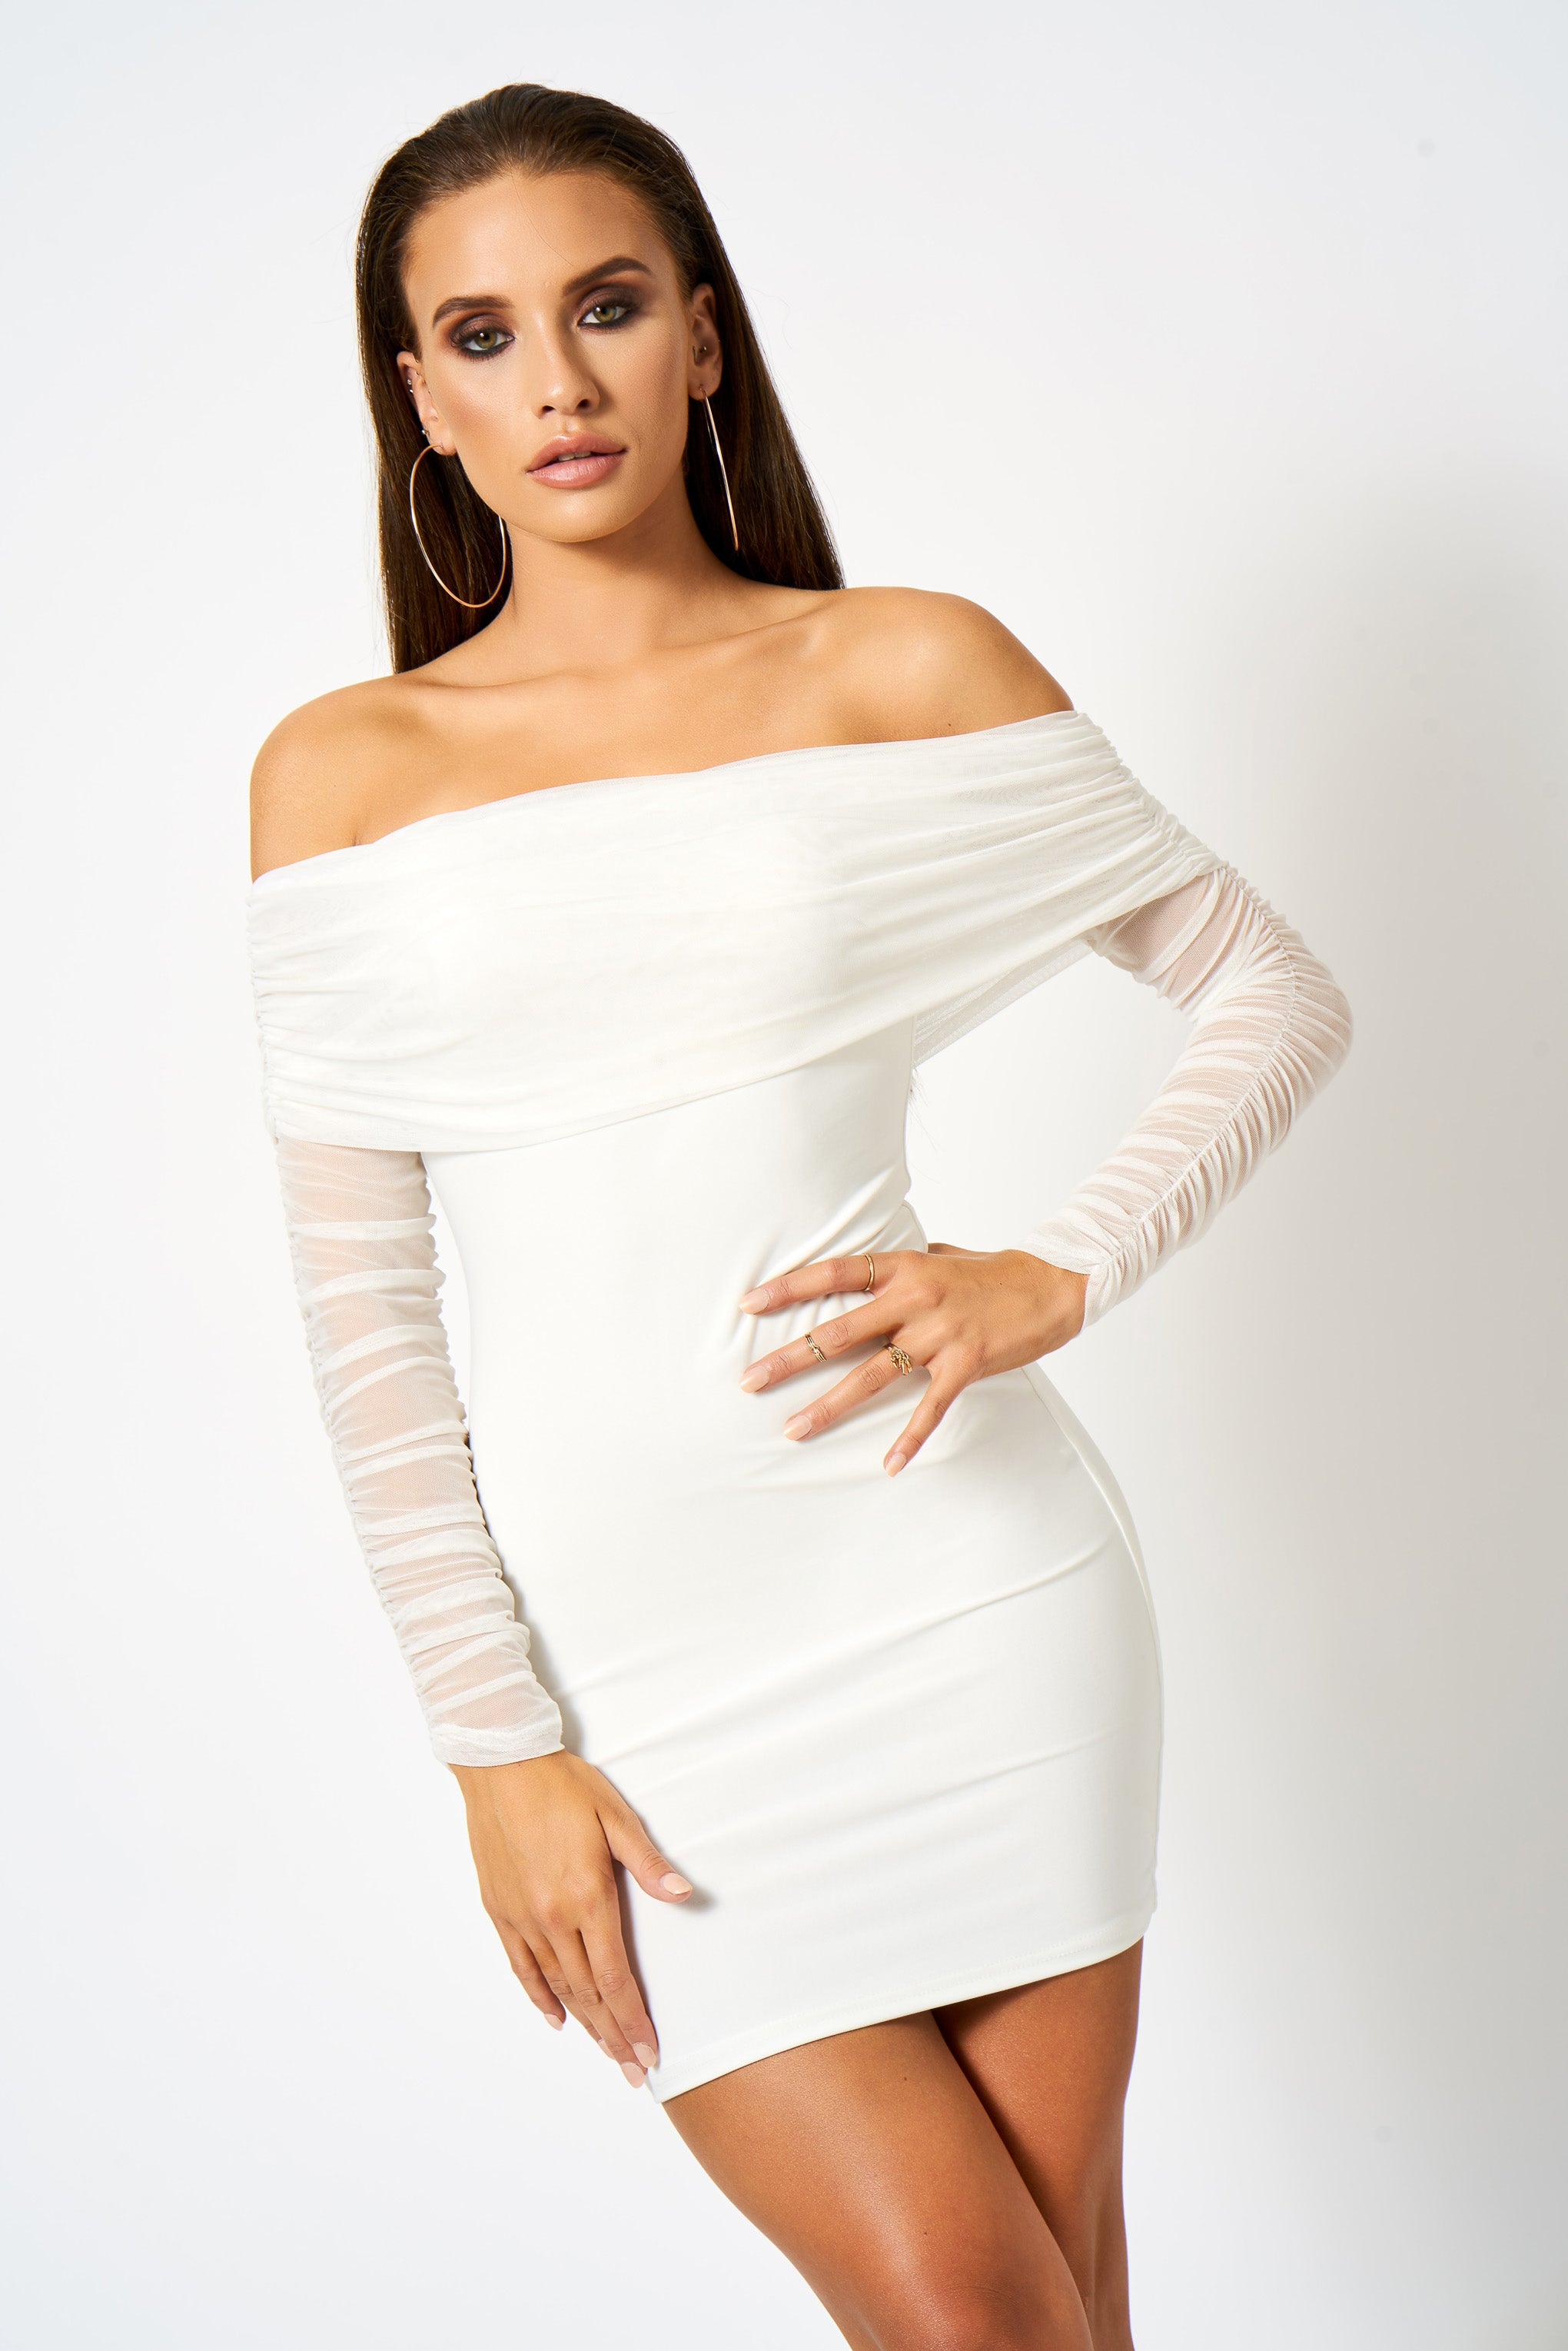 Preacher white mesh ruched bodycon dress los angeles